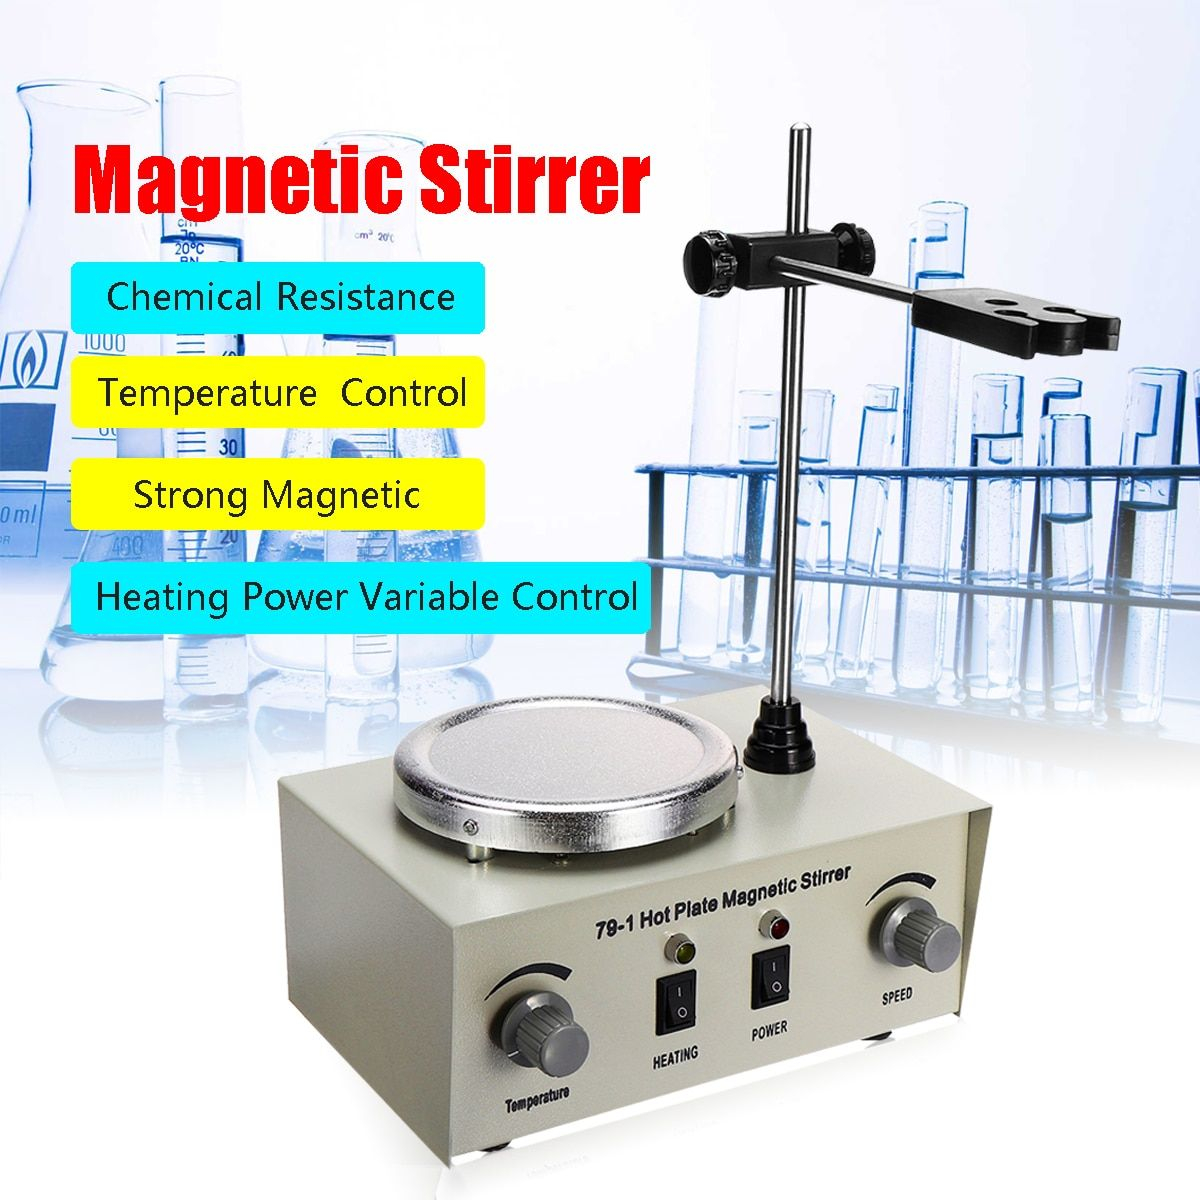 79-1 110/220V 250W 1000ml Hot Plate Magnetic Stirrer Lab Heating Dual Control Mixer US/AU/EU No Noise/Vibration Fuses Protection